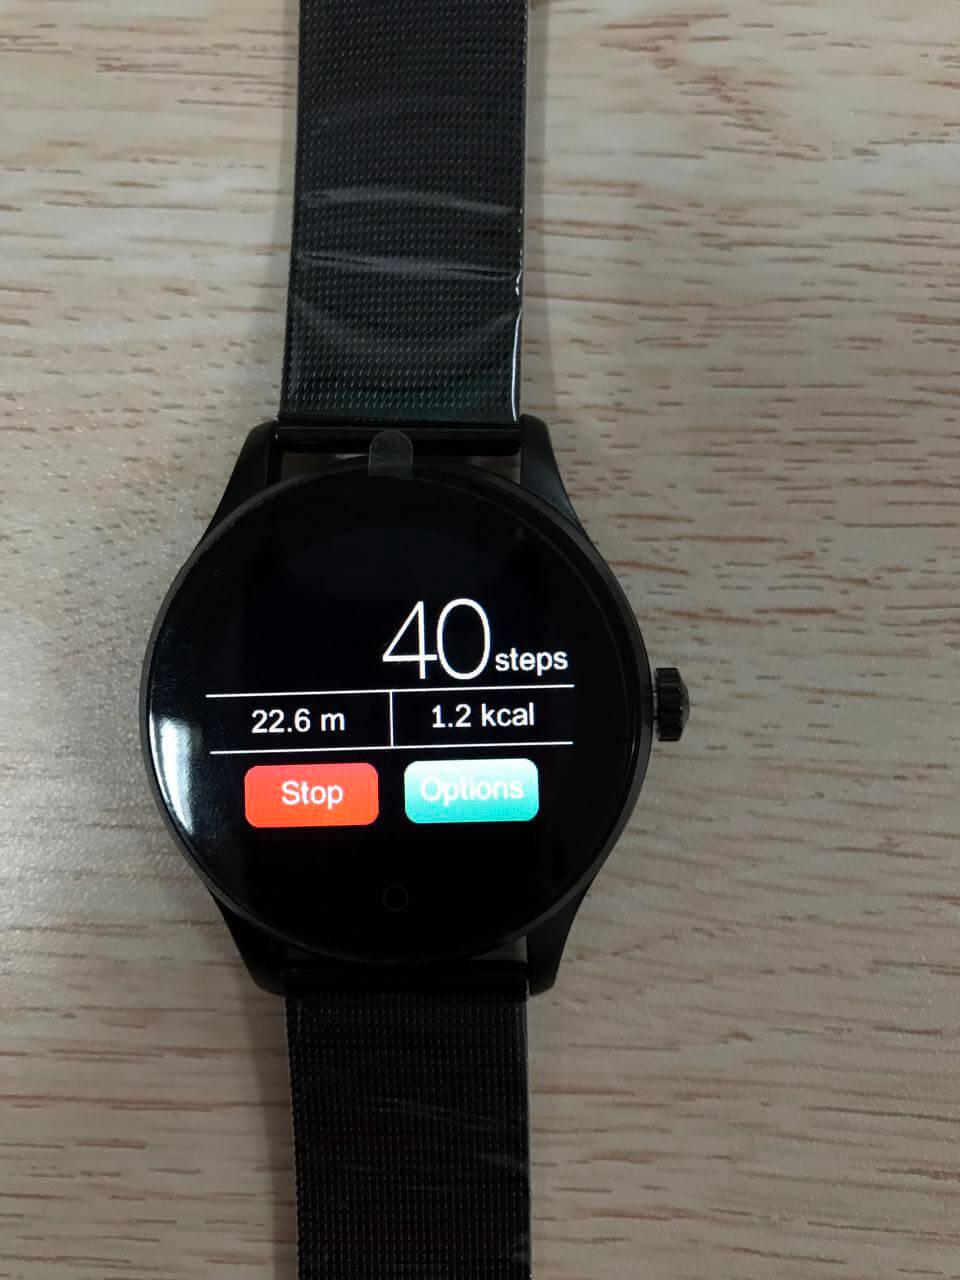 Reasons and solutions for K88H smart watch step calculation